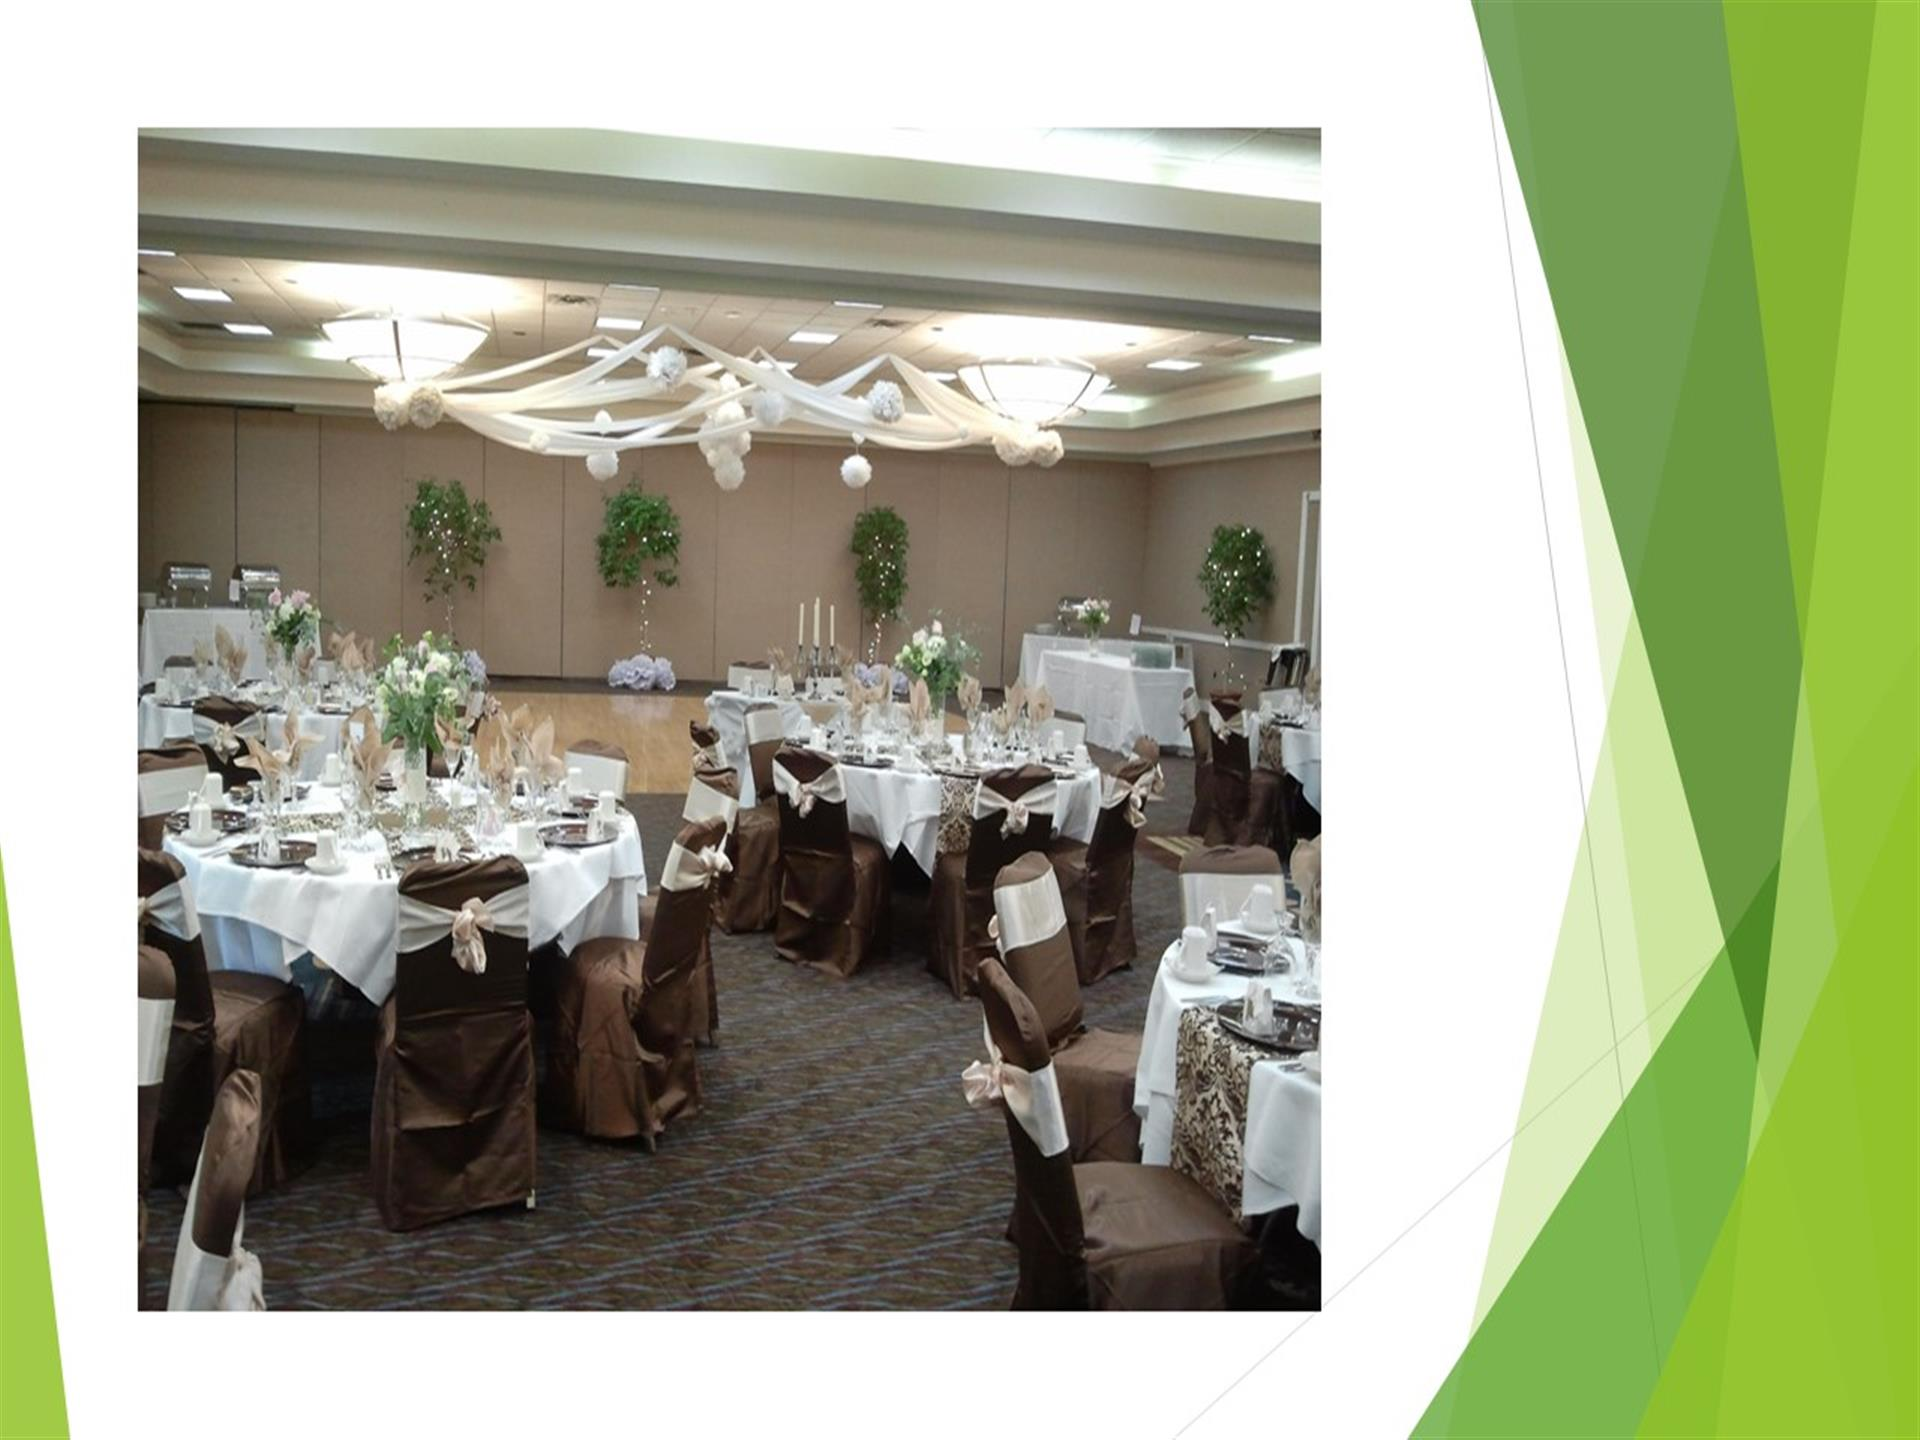 Banquet hall with white tablecloths and brown chairs.